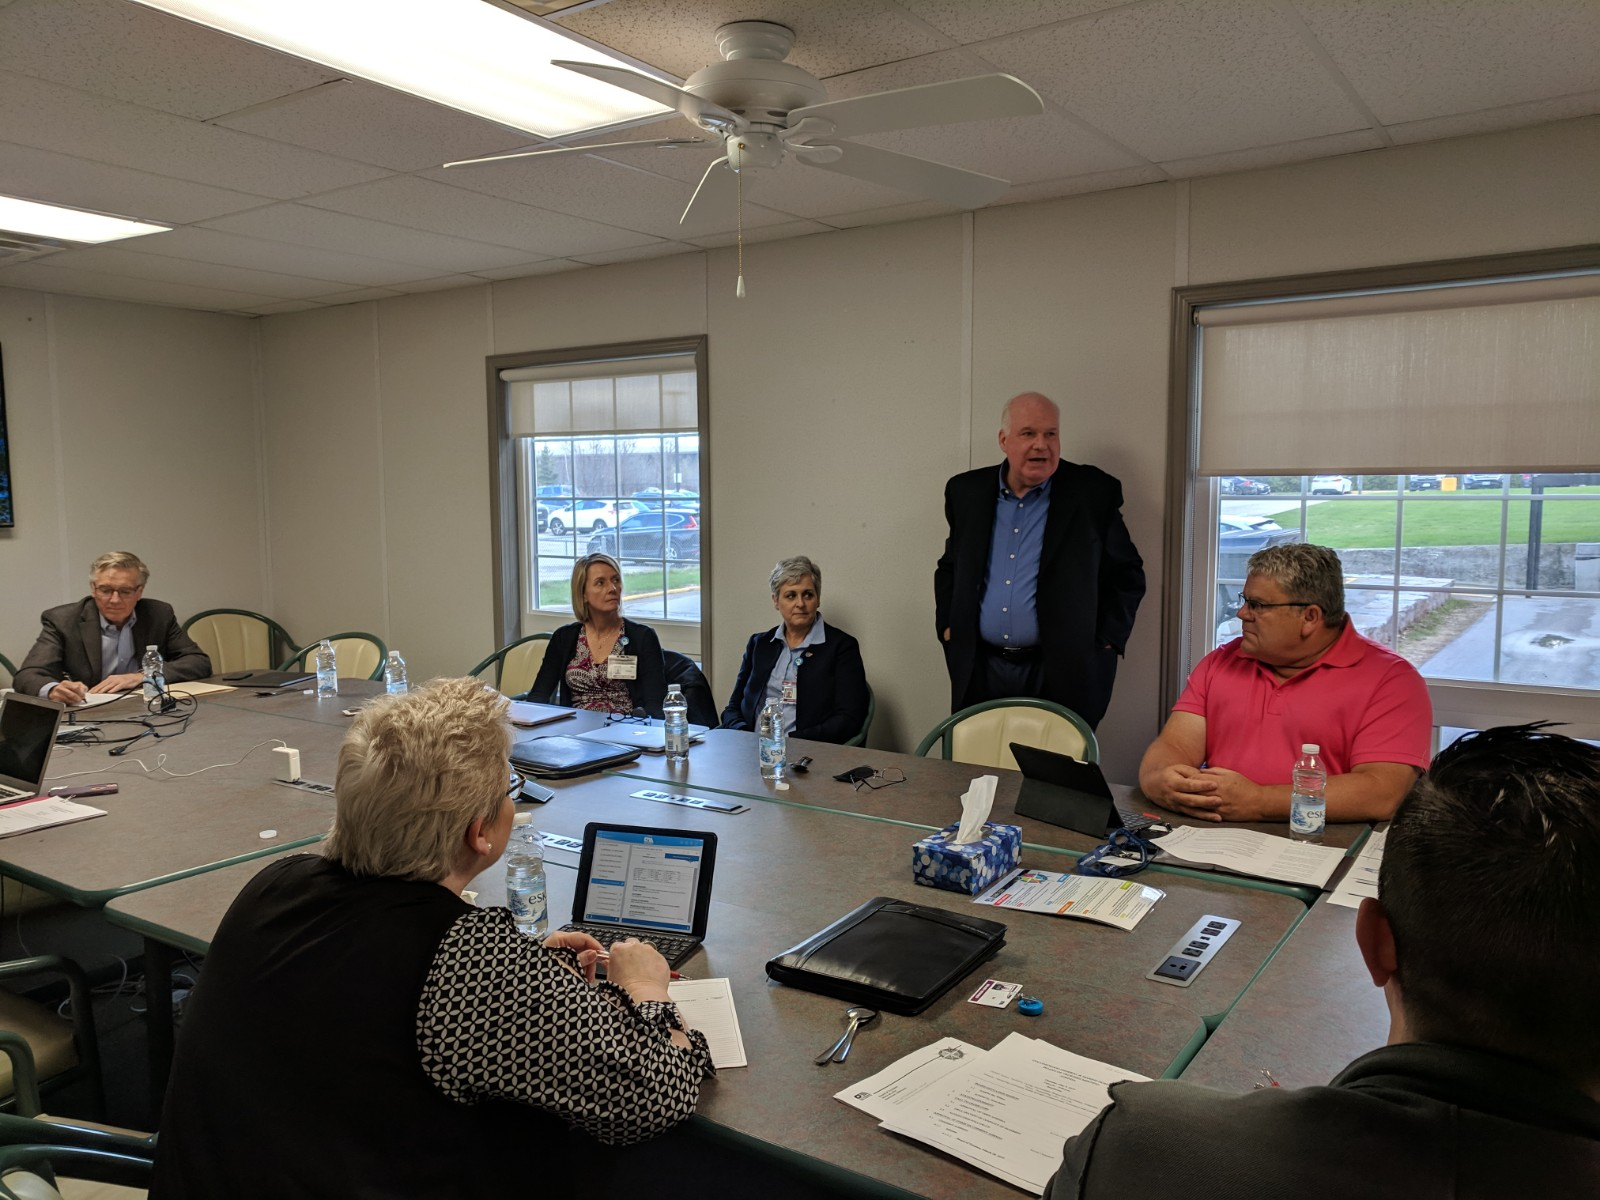 Collingwood Hospital board meeting photo May 2019